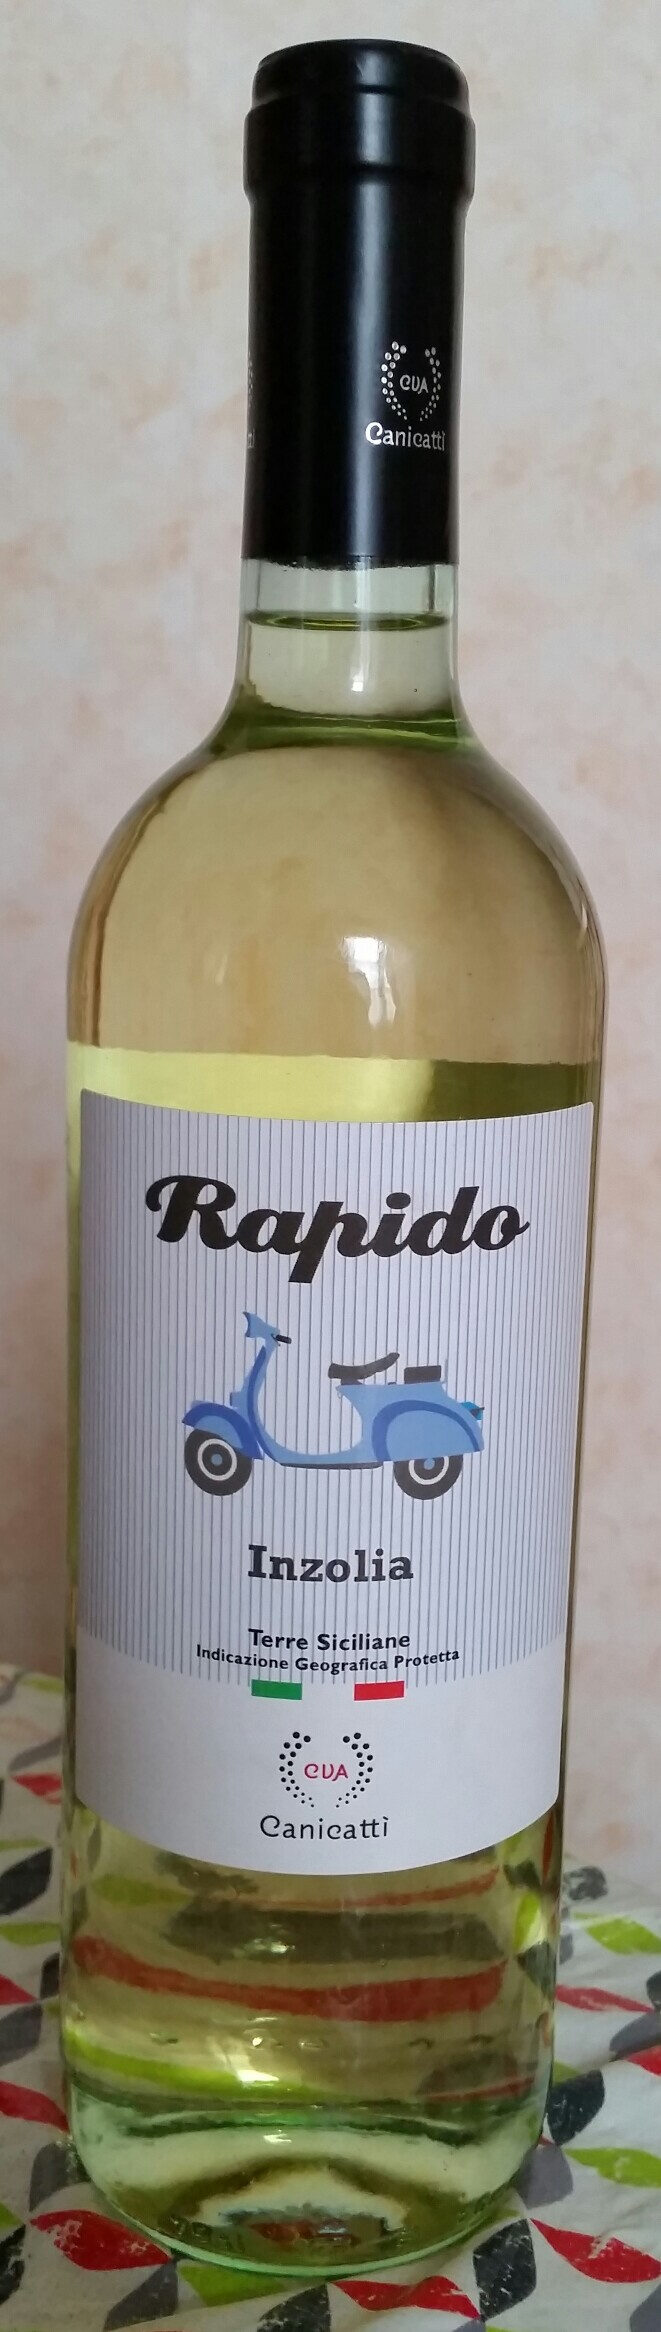 Rapido - Product